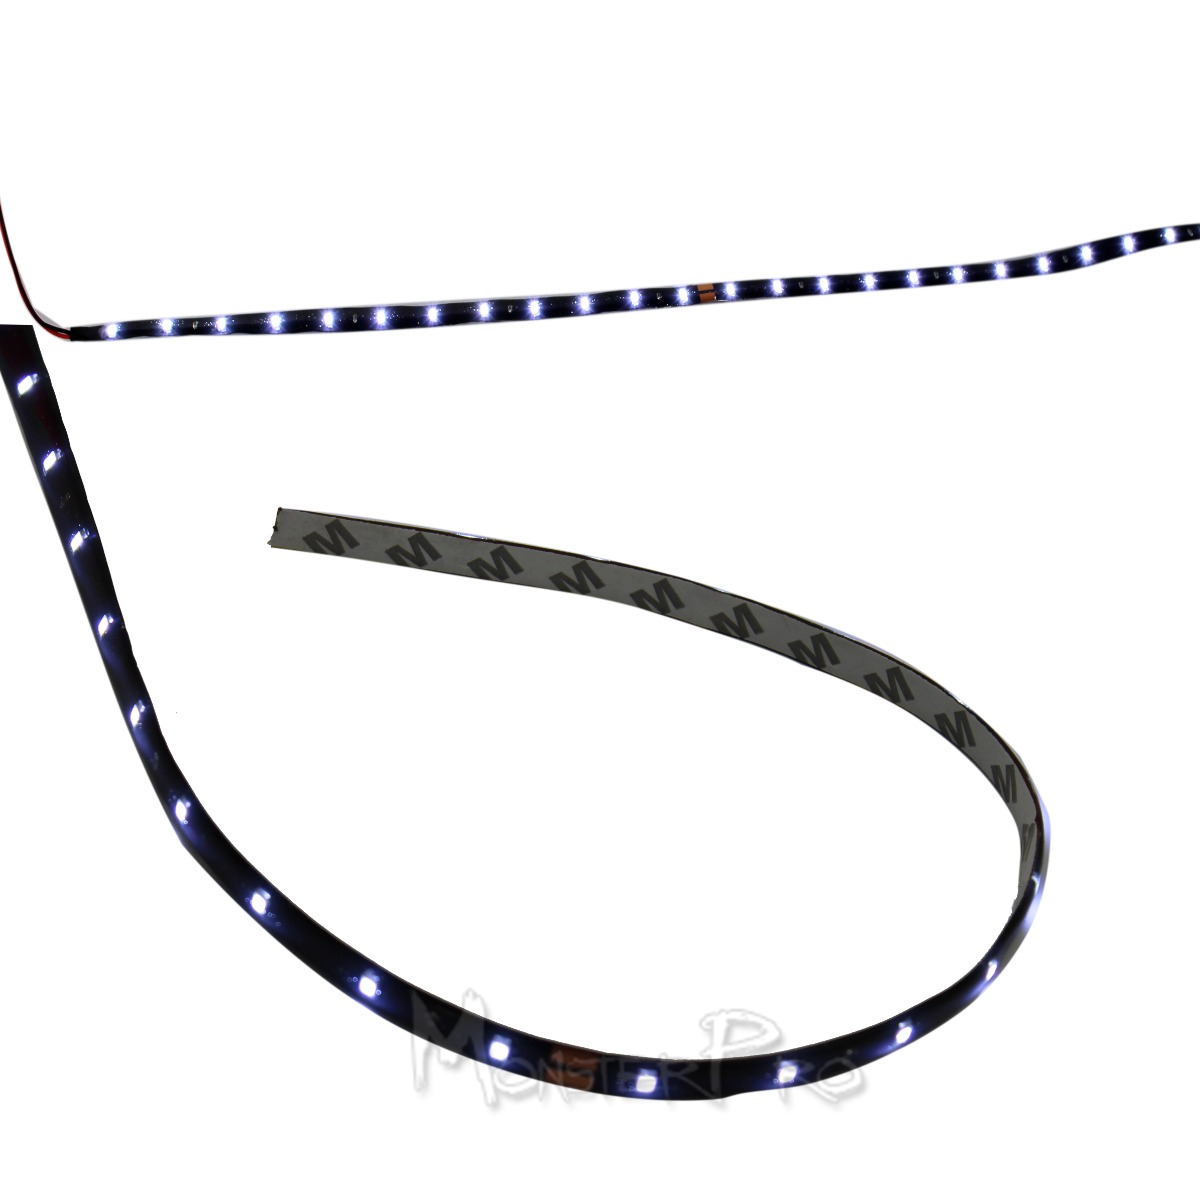 Purchase 60cm Long Smd Led Strip Light Car Motorcycle